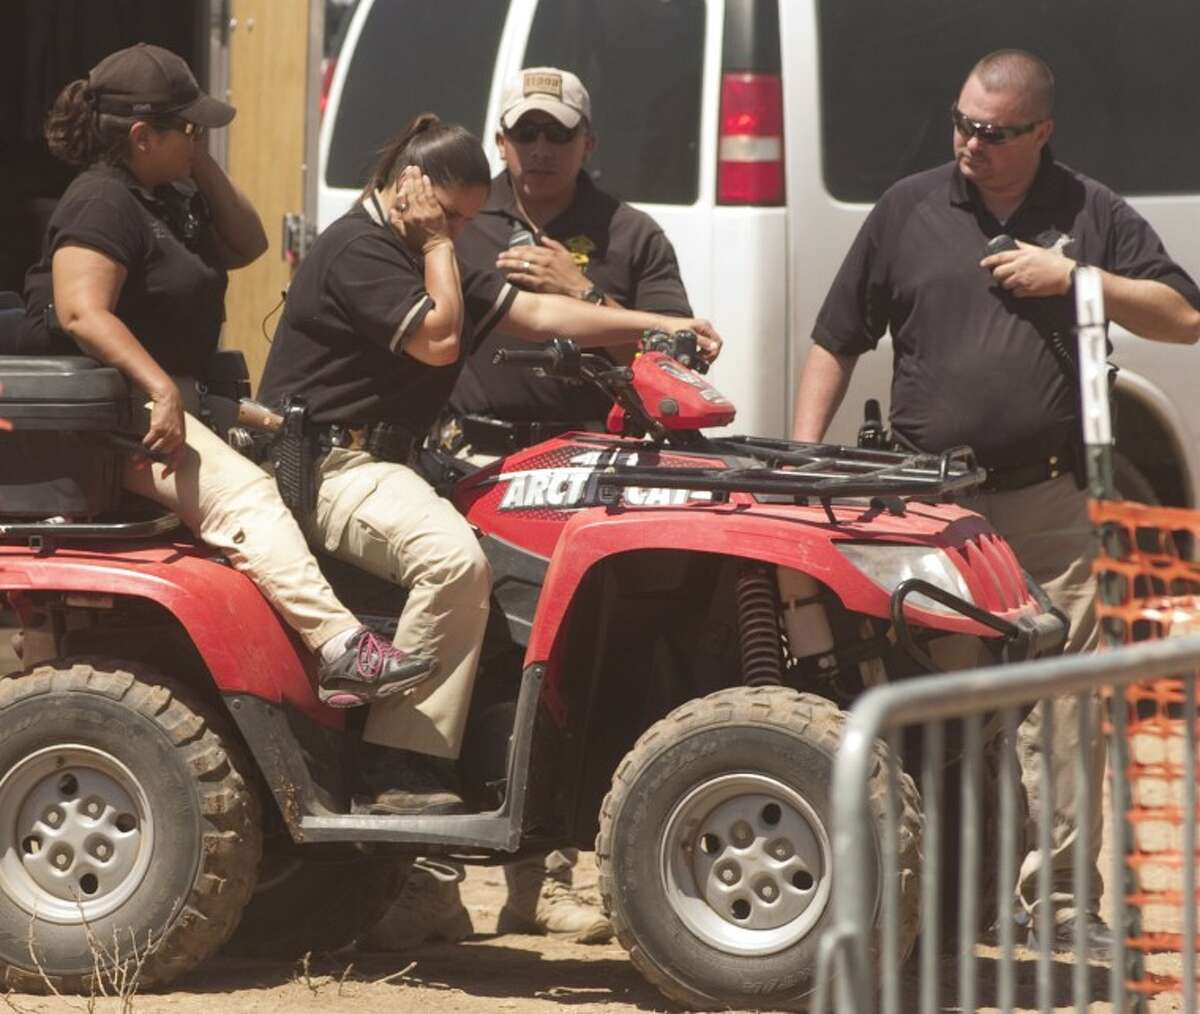 In this file photo of a past Crude Festsecurity/police at Crude Fest travel on foot and ATV to make their way around the venue. Photo by Tim Fischer/Midland Reporter-Telegram